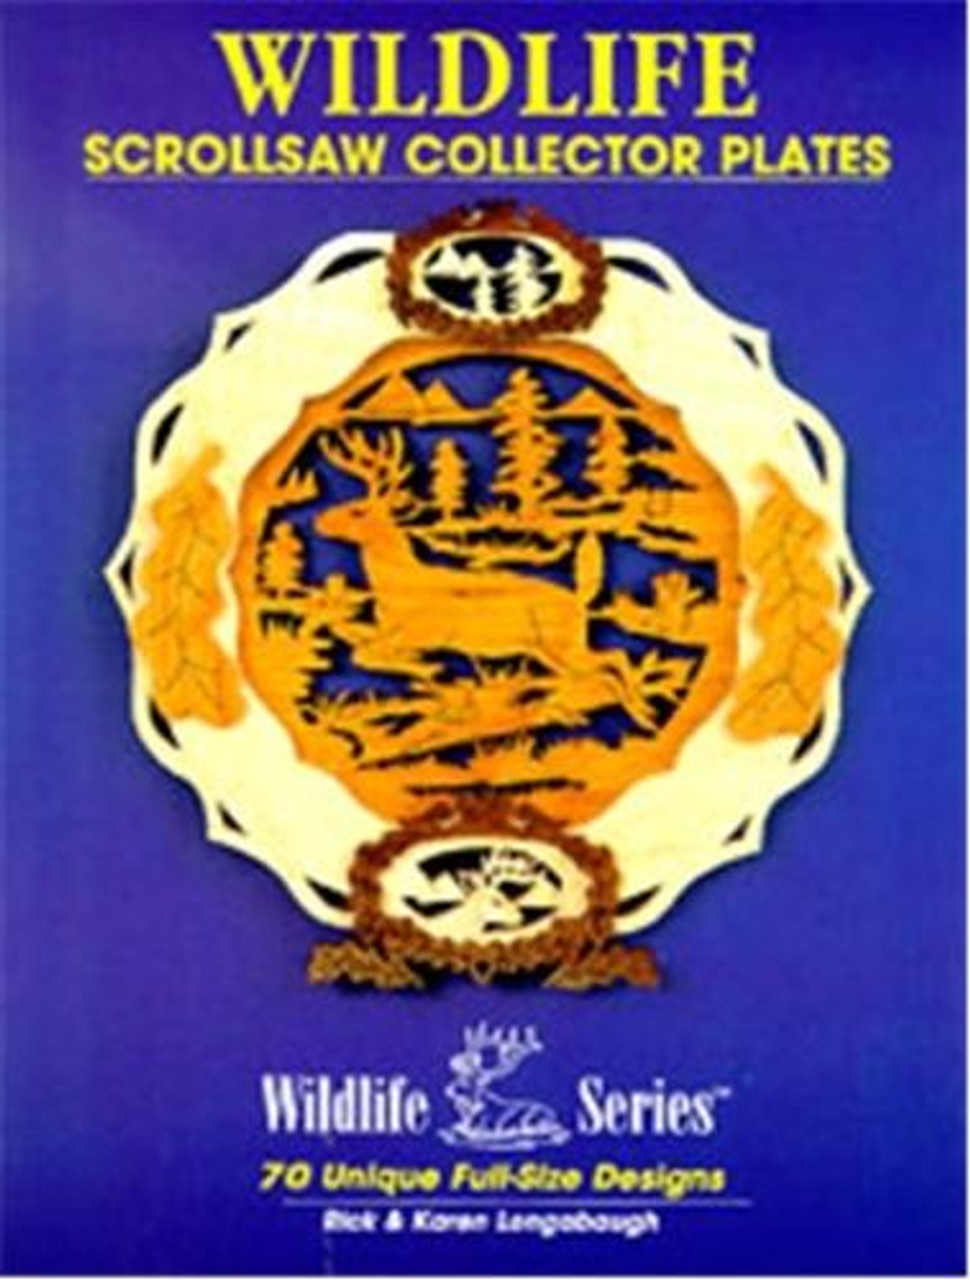 Wildlife Scrollsaw Collector Plates Book